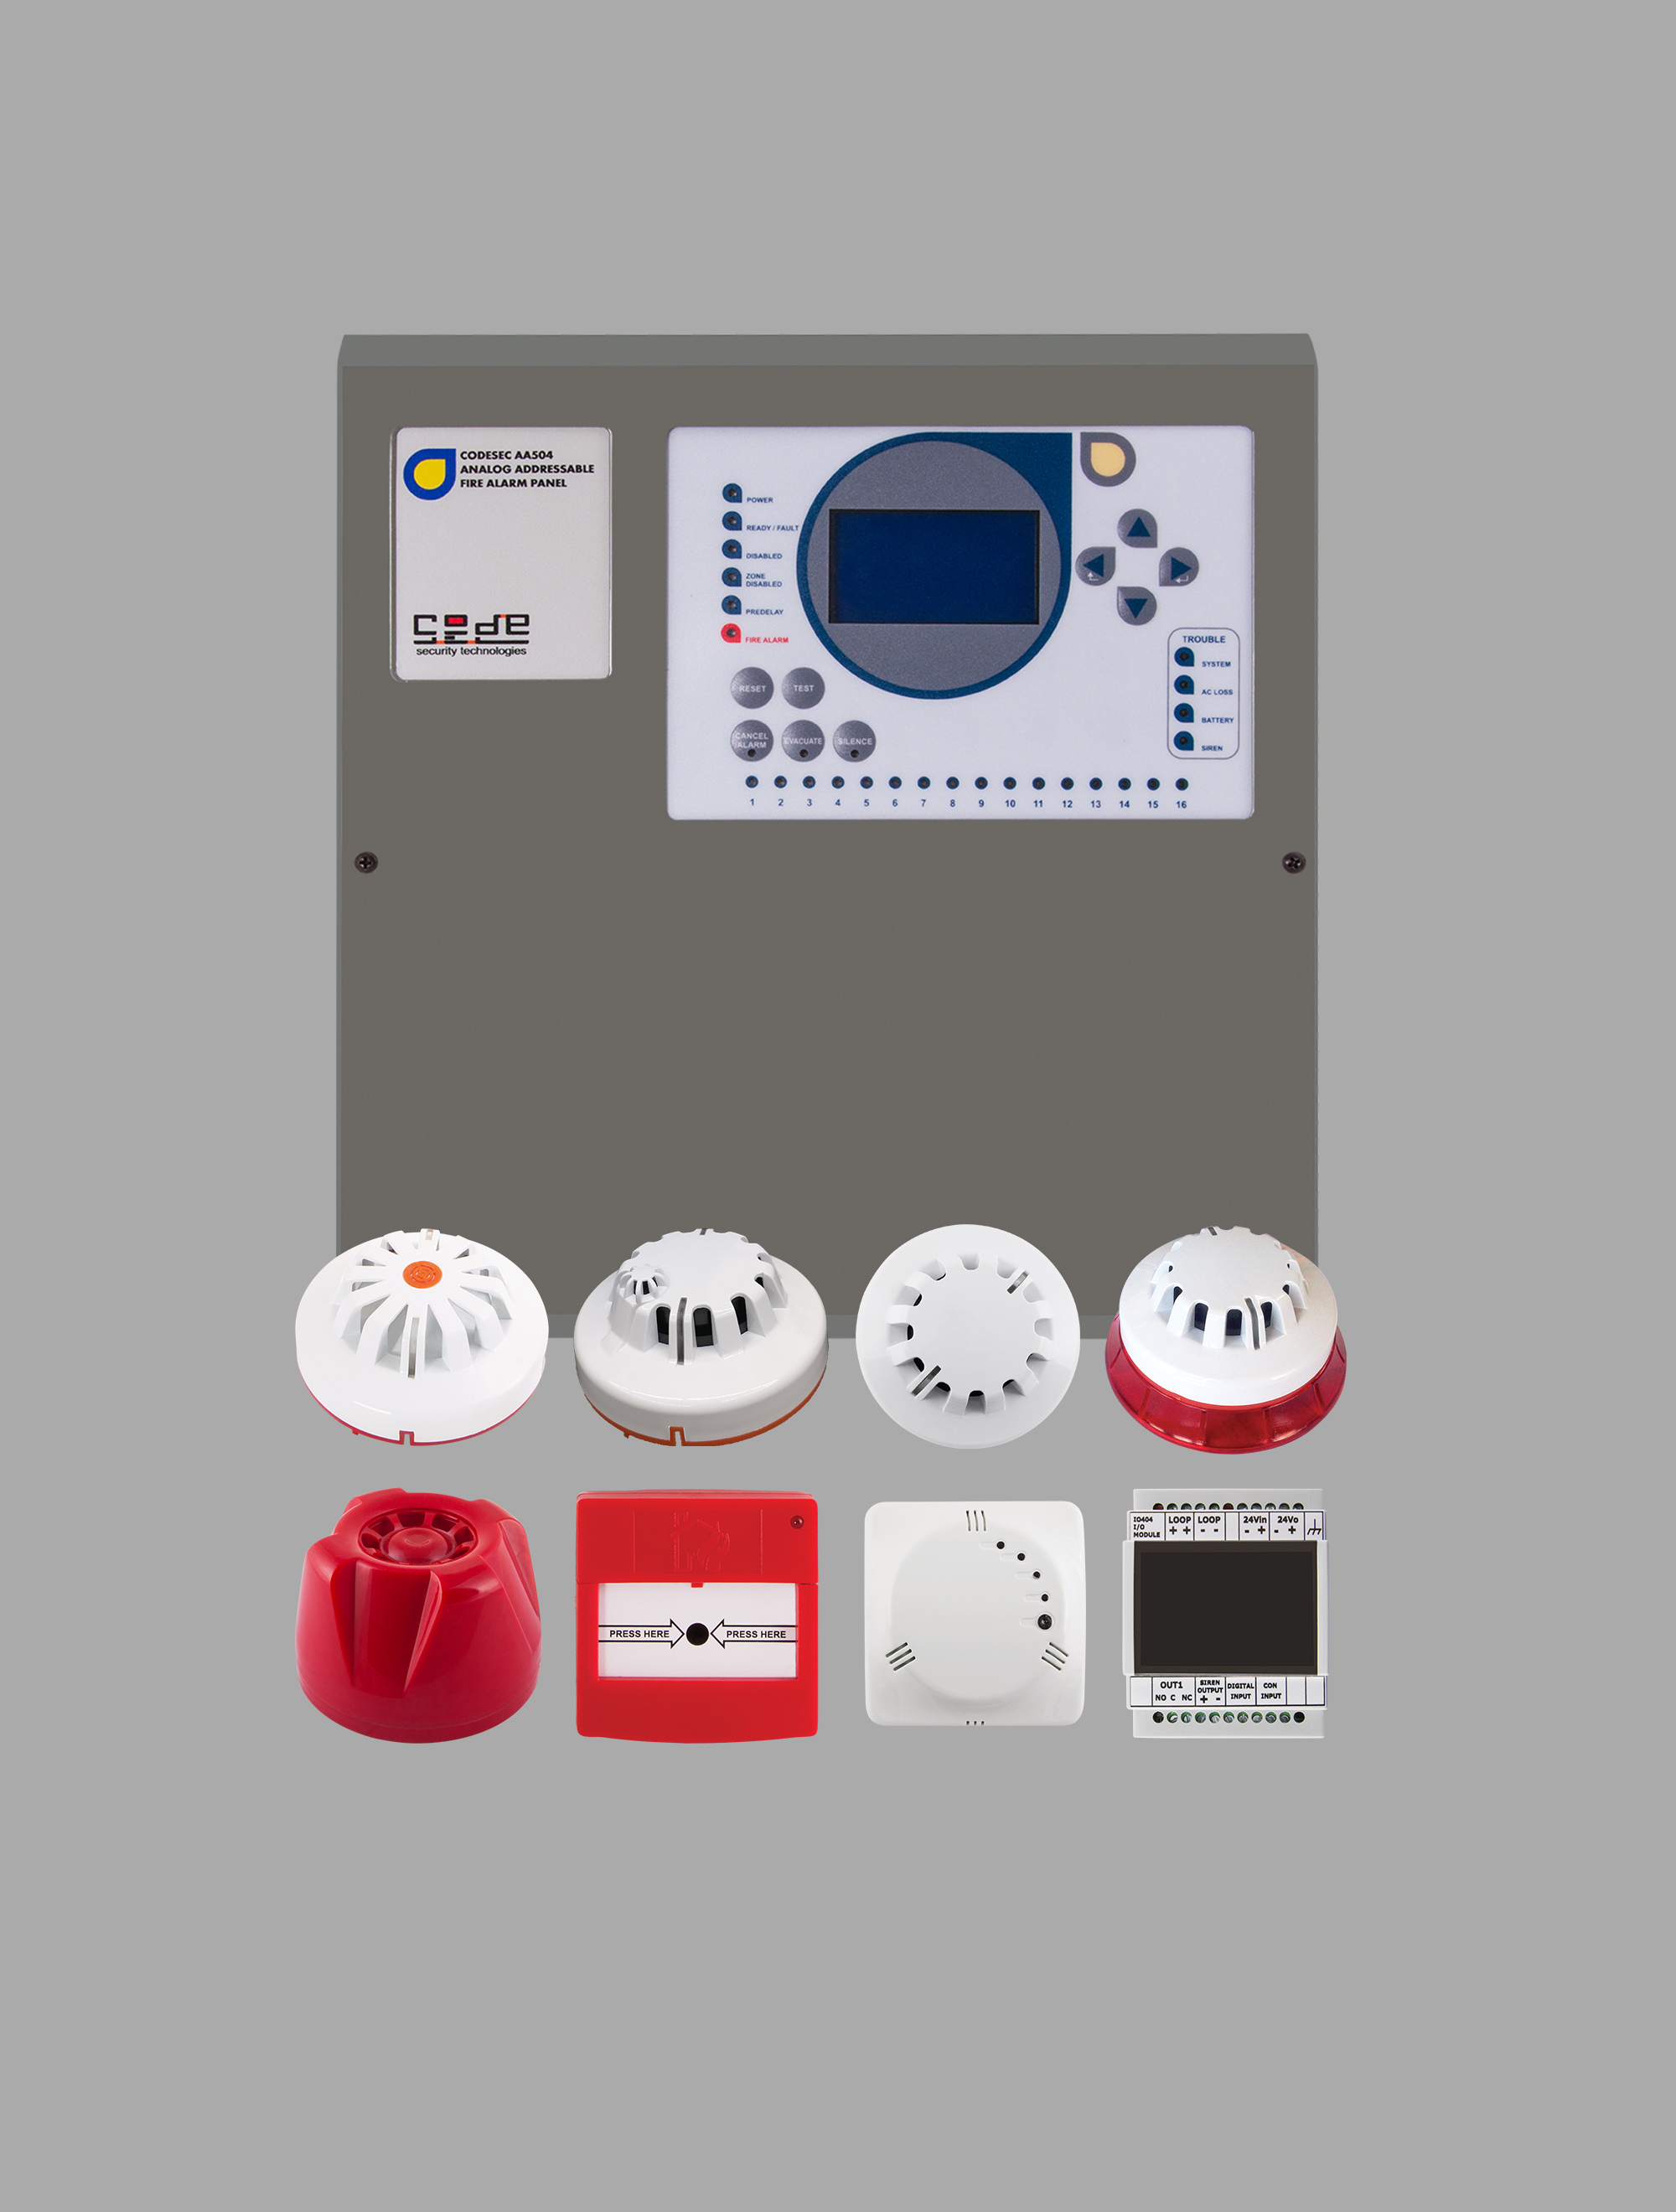 Addressable Fire Detection and Control Systems